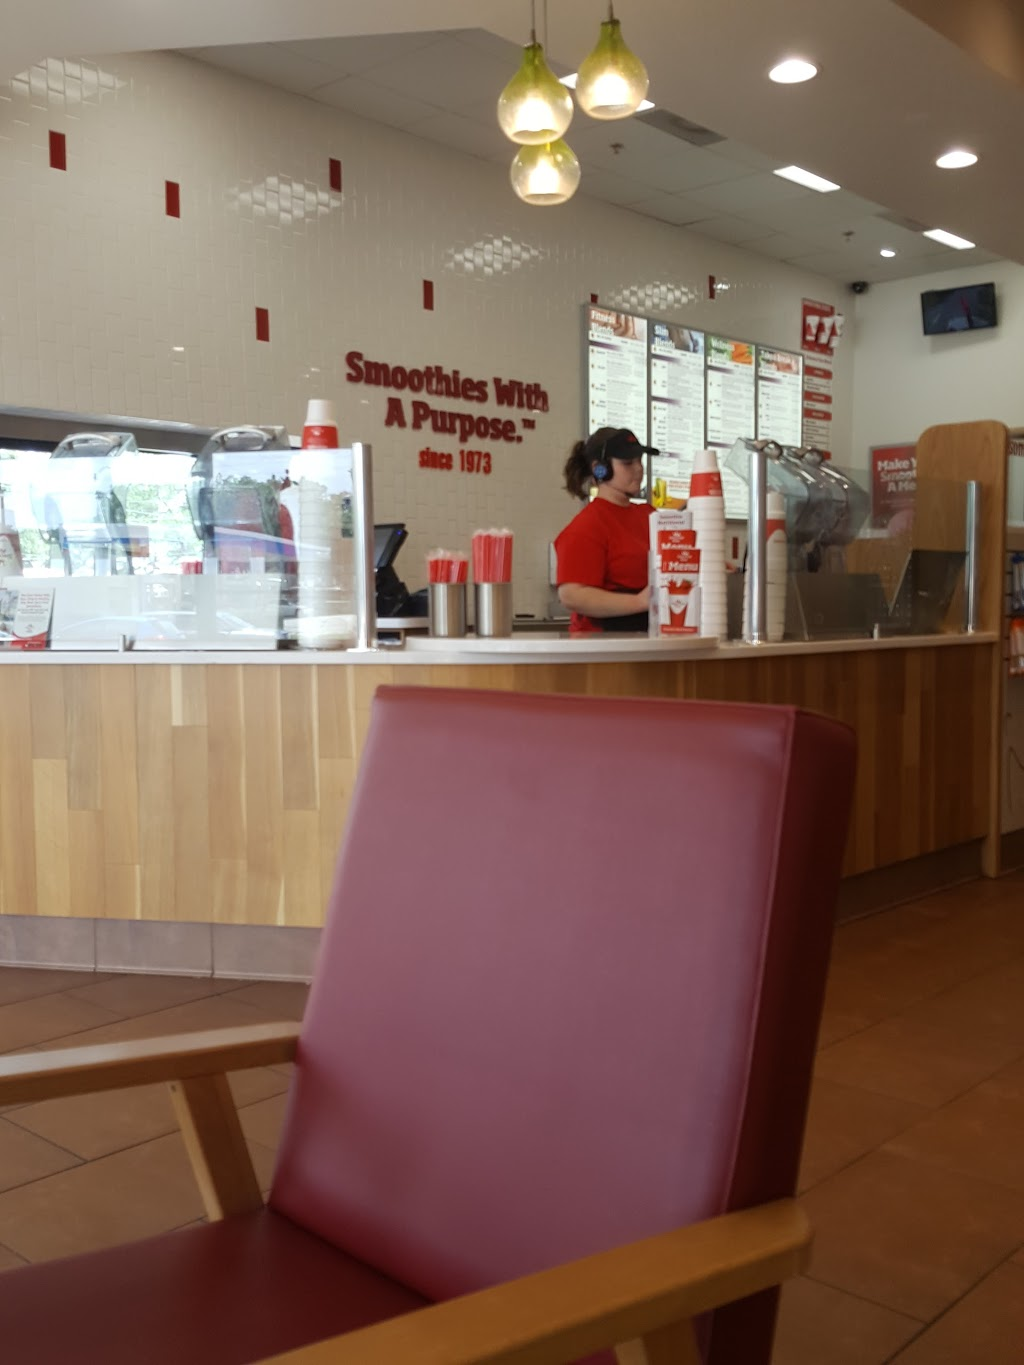 Smoothie King | meal delivery | 2370 Hillcrest Rd Ste. A, Mobile, AL 36695, USA | 2513788529 OR +1 251-378-8529